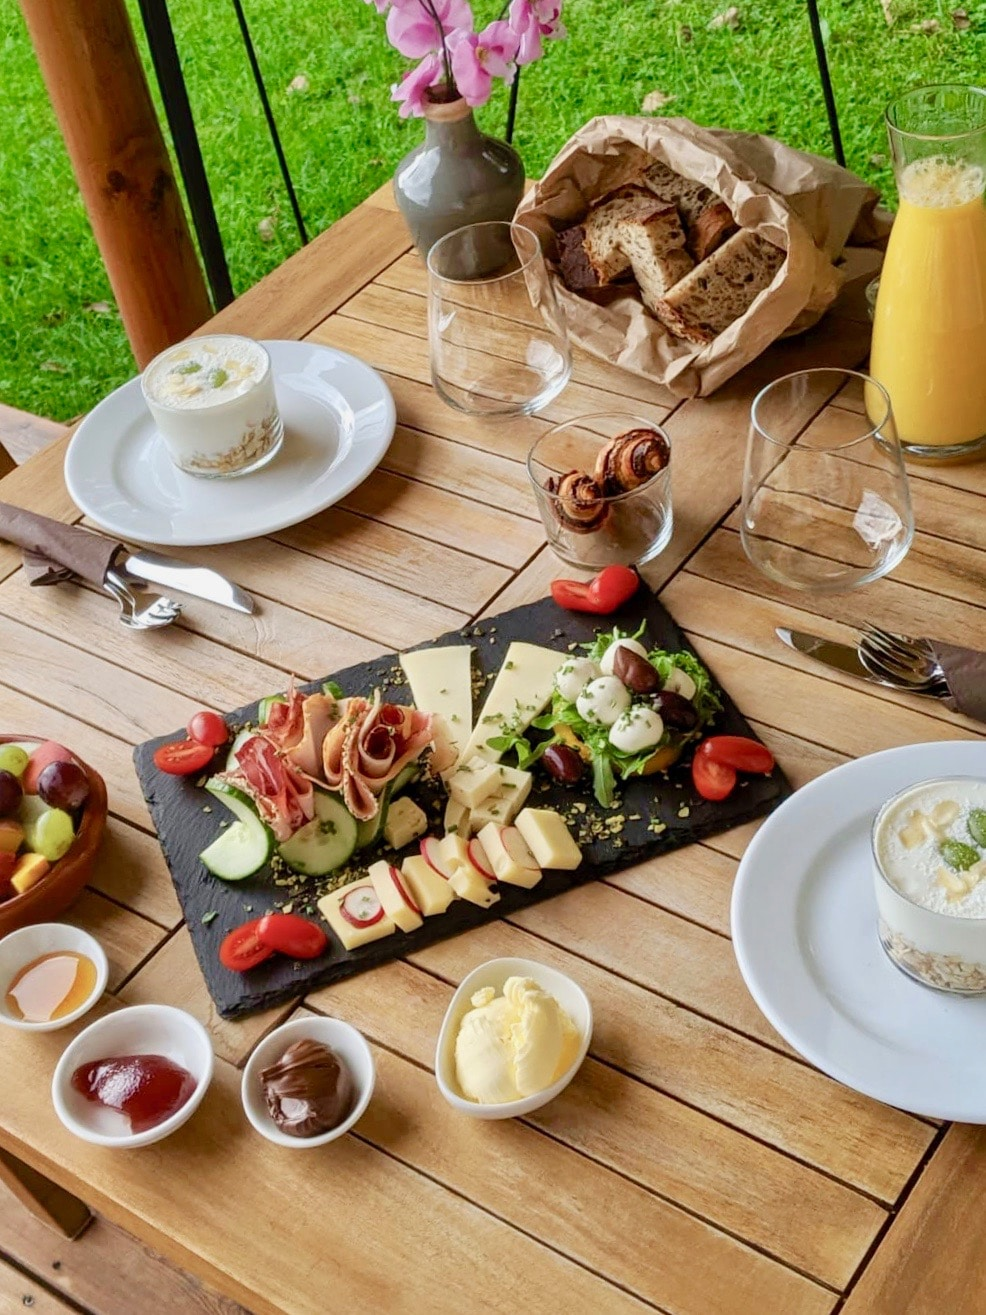 Overhead view of breakfast on wooden table. In the centre is a slate with cheese, ham and salad on. Taken at Chateau Ramsak glamping resort in slovenia